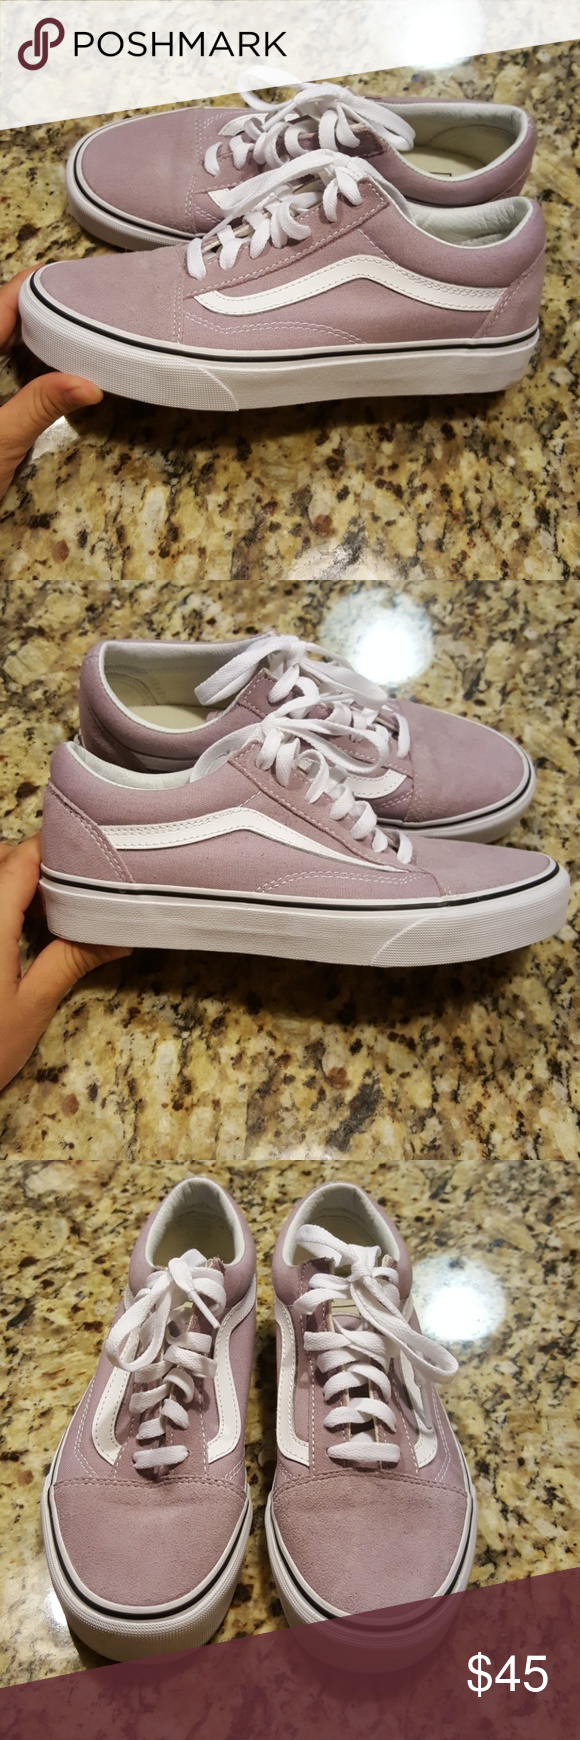 ecd5bc14bfb9d7 WOMENS VANS OLD SKOOL (SEA FOG TRUE WHITE COLOR) Signature curved stripes  and